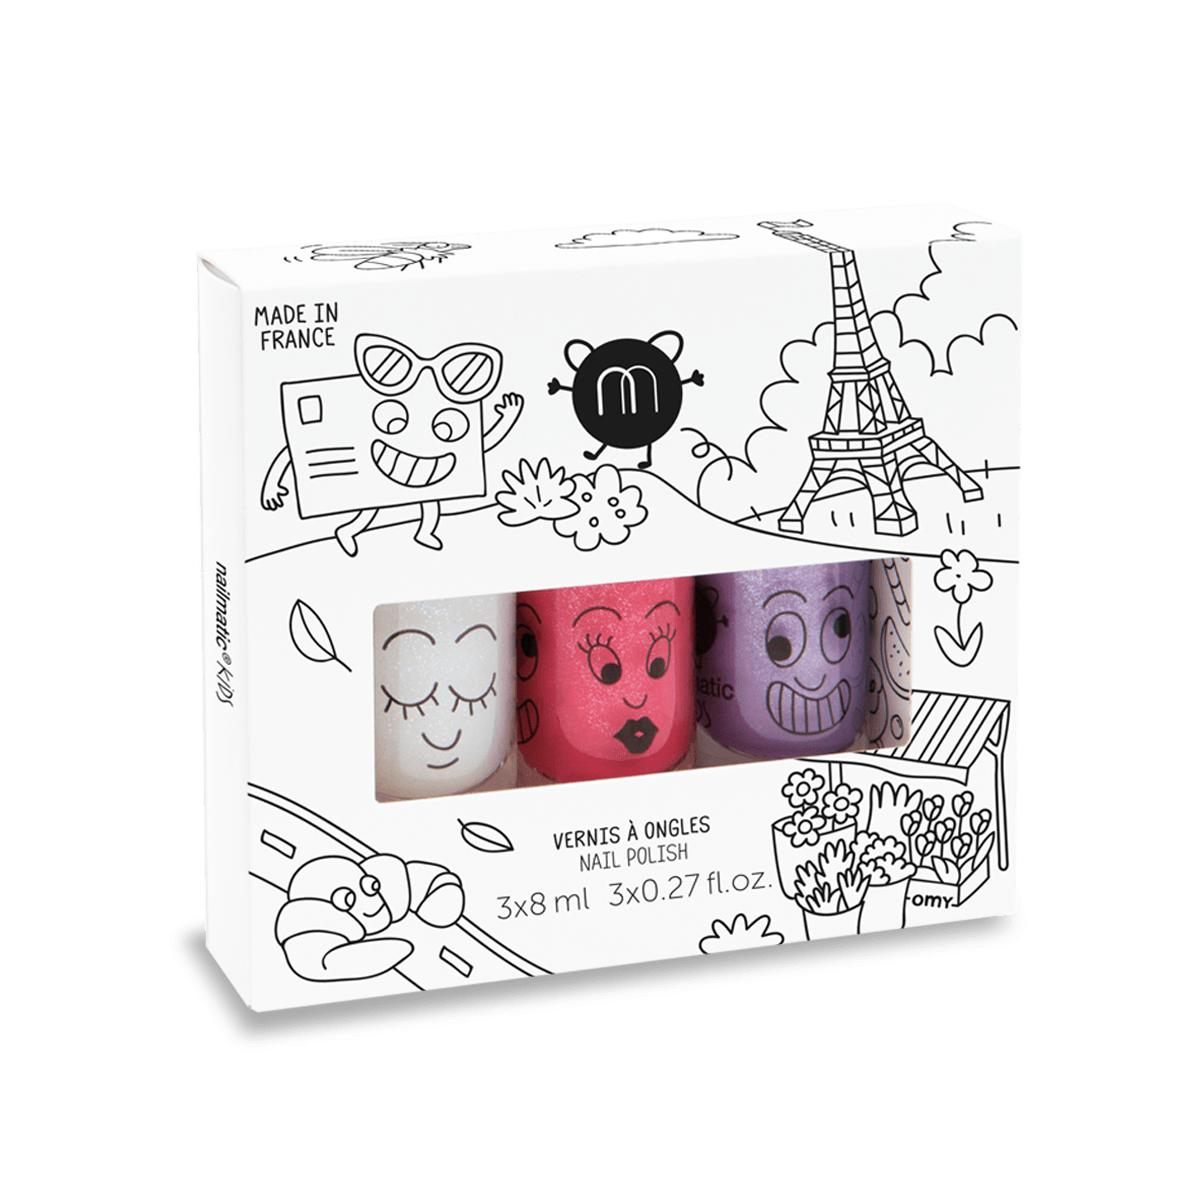 List Price Nailmatic Kids Nail Polish Set City Not Specified